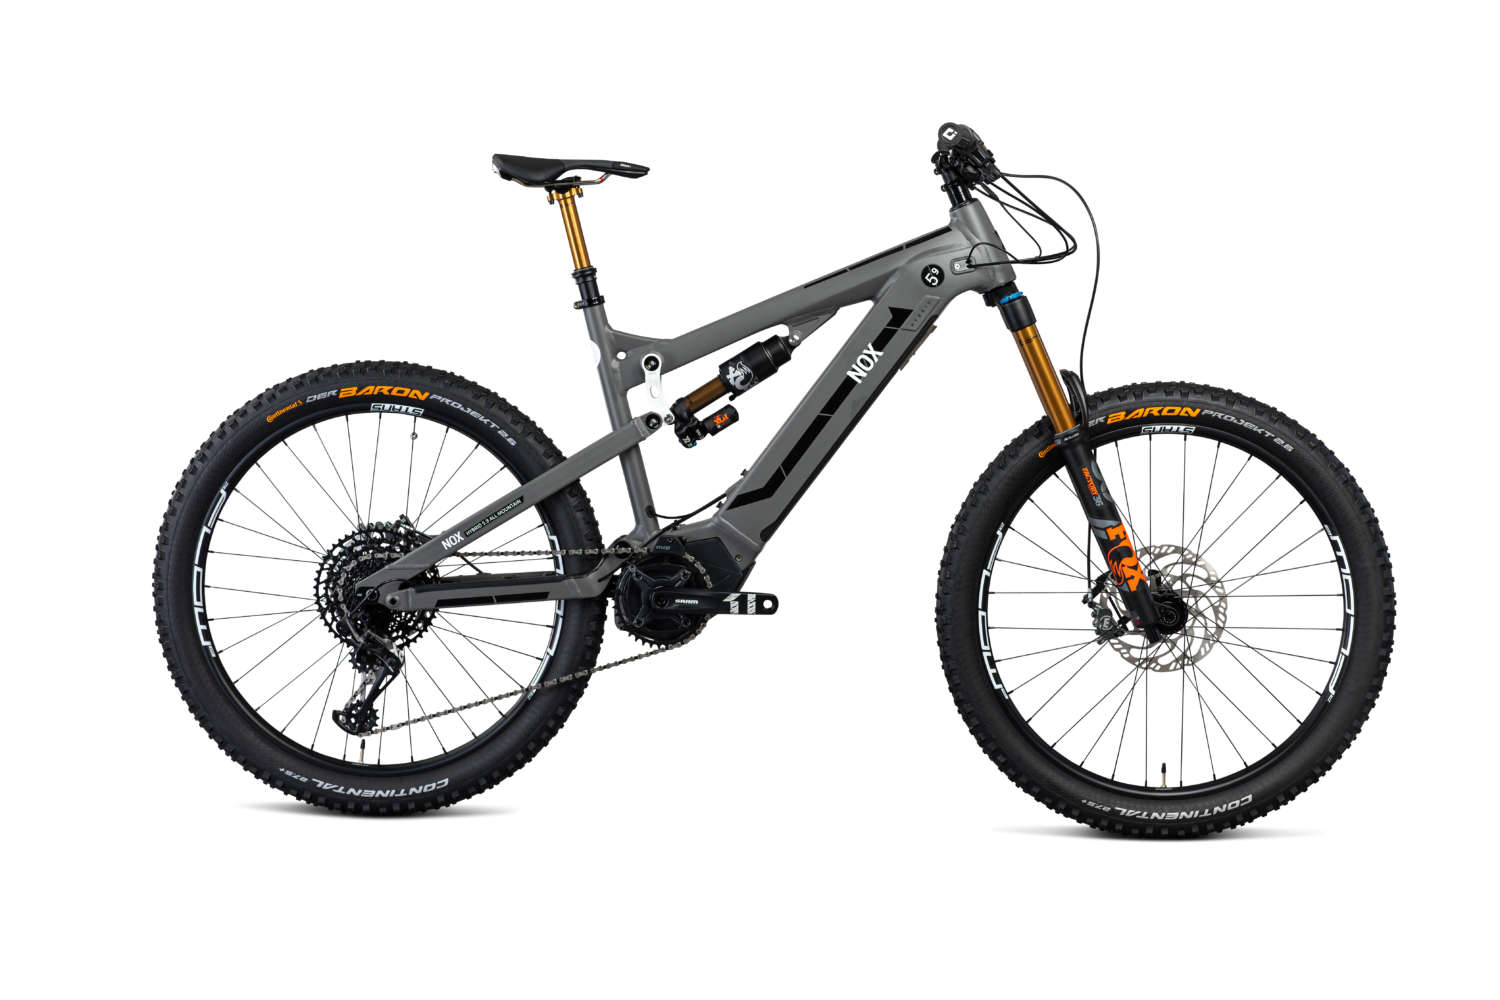 Nox Hybrid 5.9 All-Mountain Pro 2021